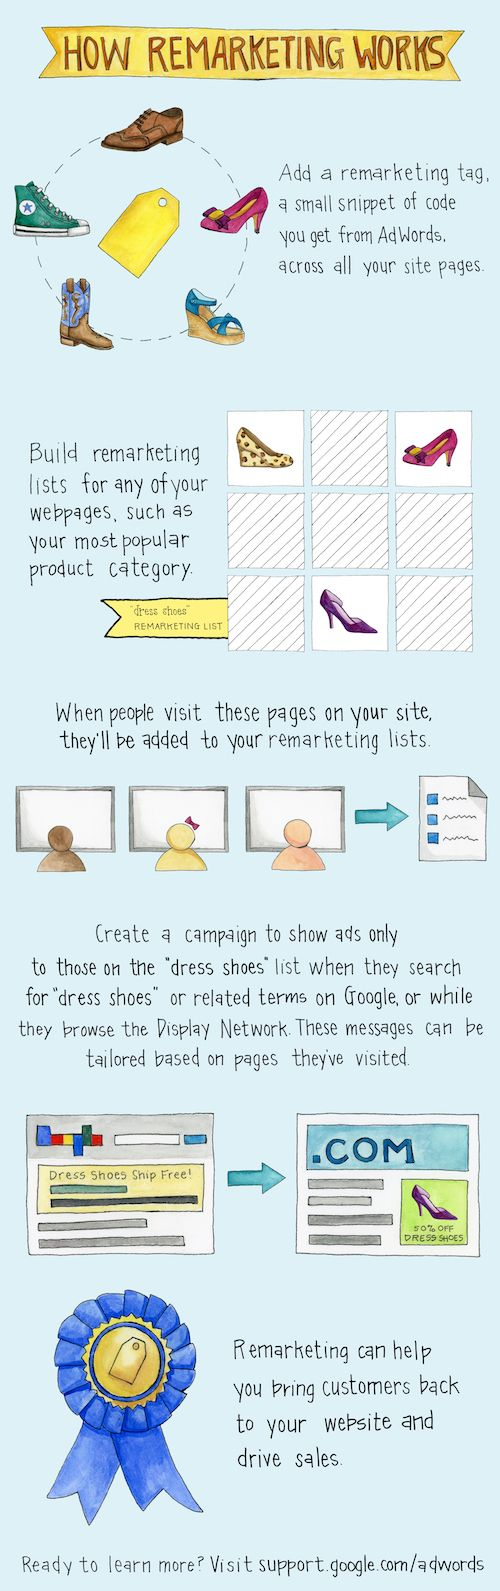 #Remarketing - a way to target market visitors who previously visited your website. Simple infographic gives you the basics.